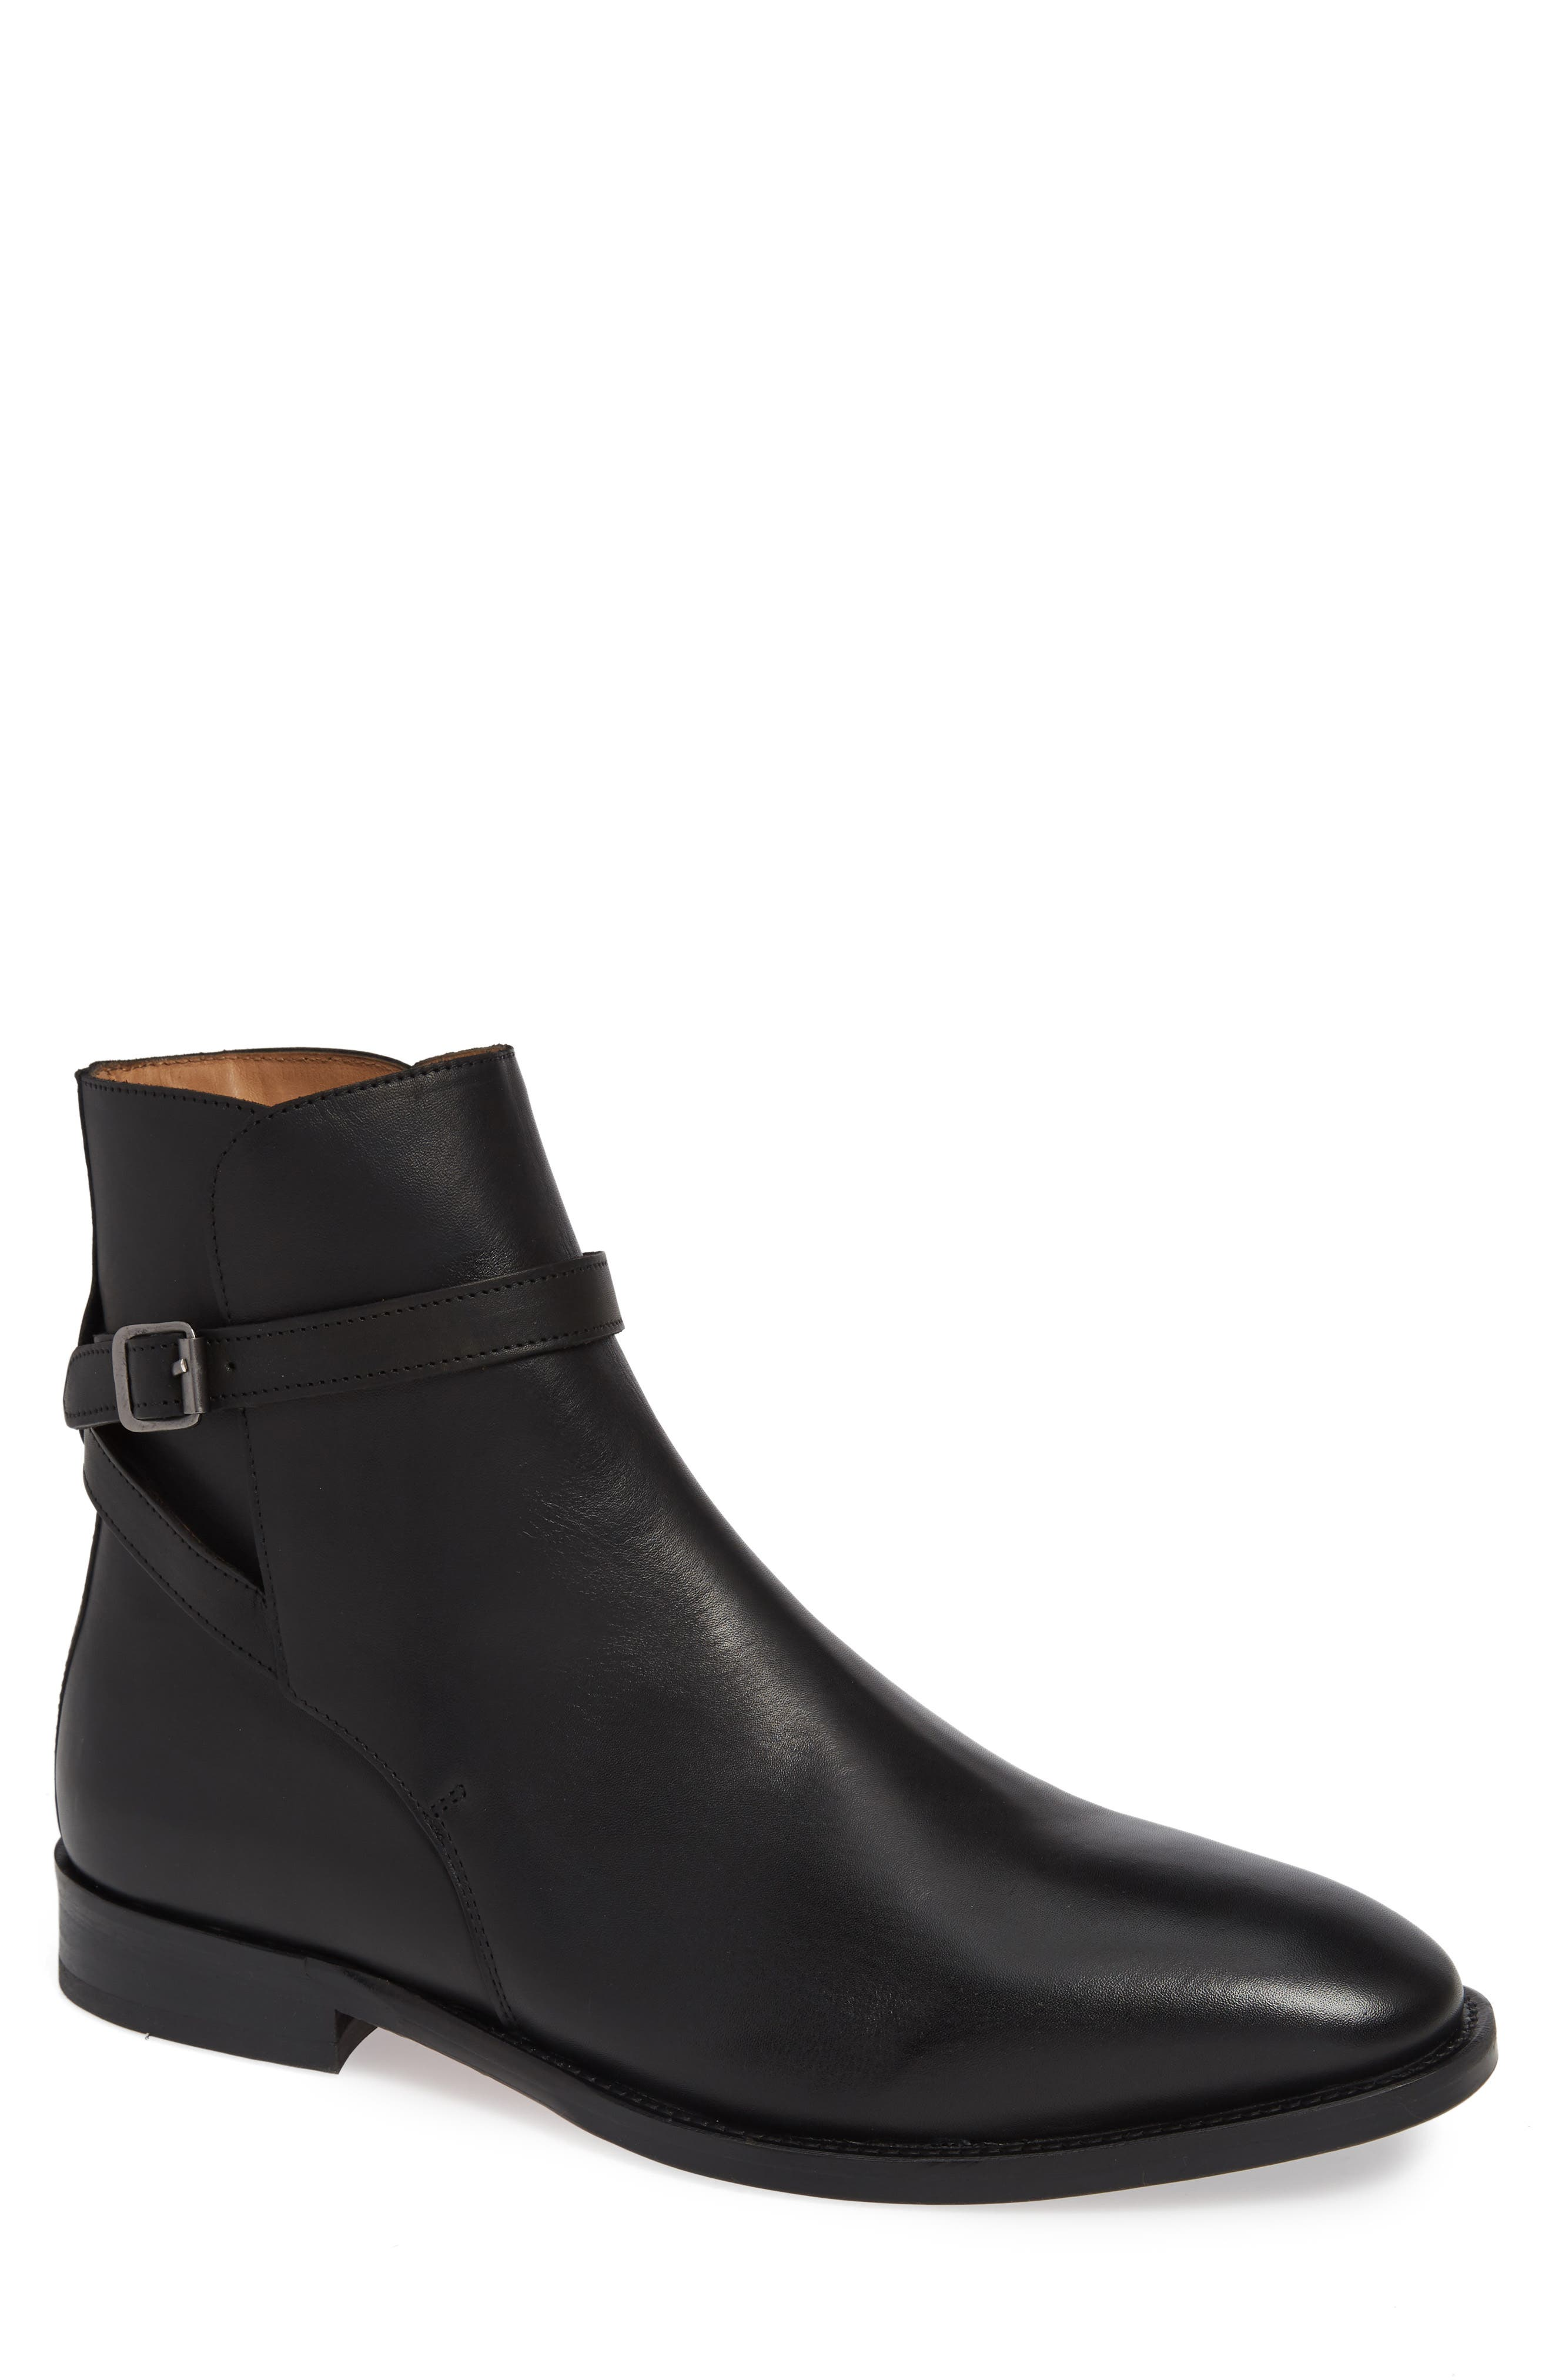 Vince Camuto Hop Buckle Strap Boot- Black